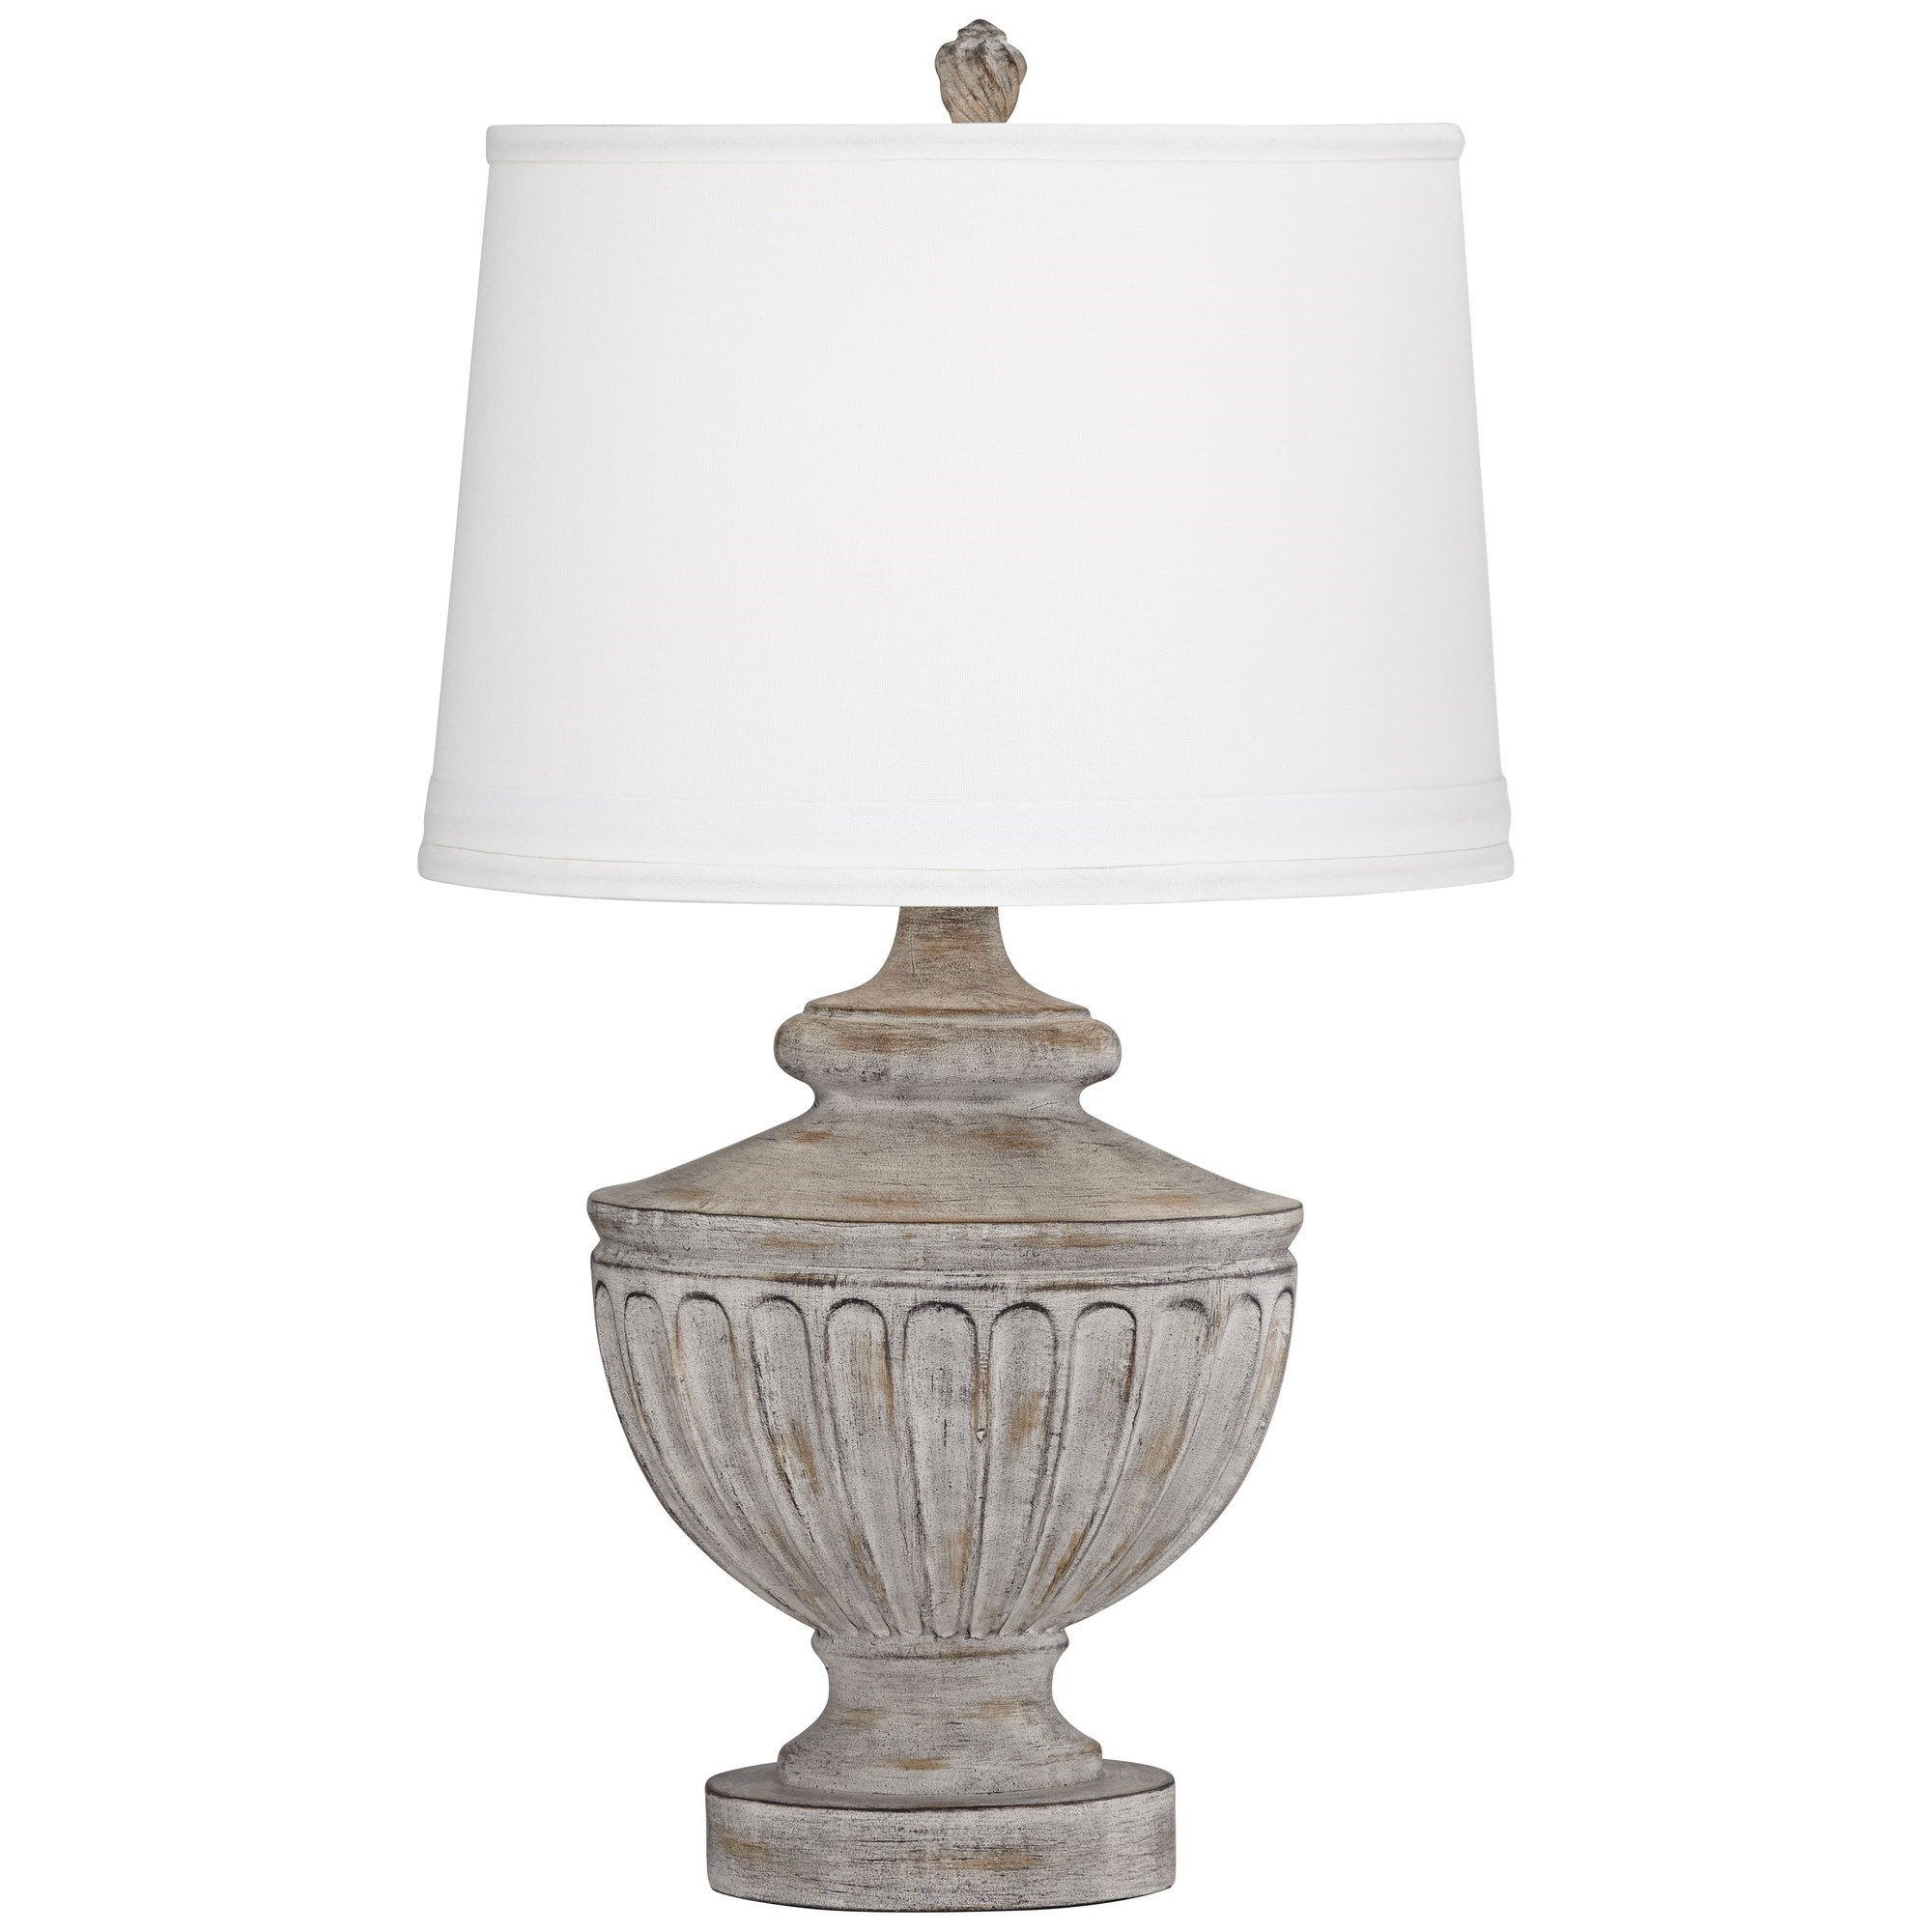 Table Lamps Table Lamp by Pacific Coast Lighting at Pedigo Furniture